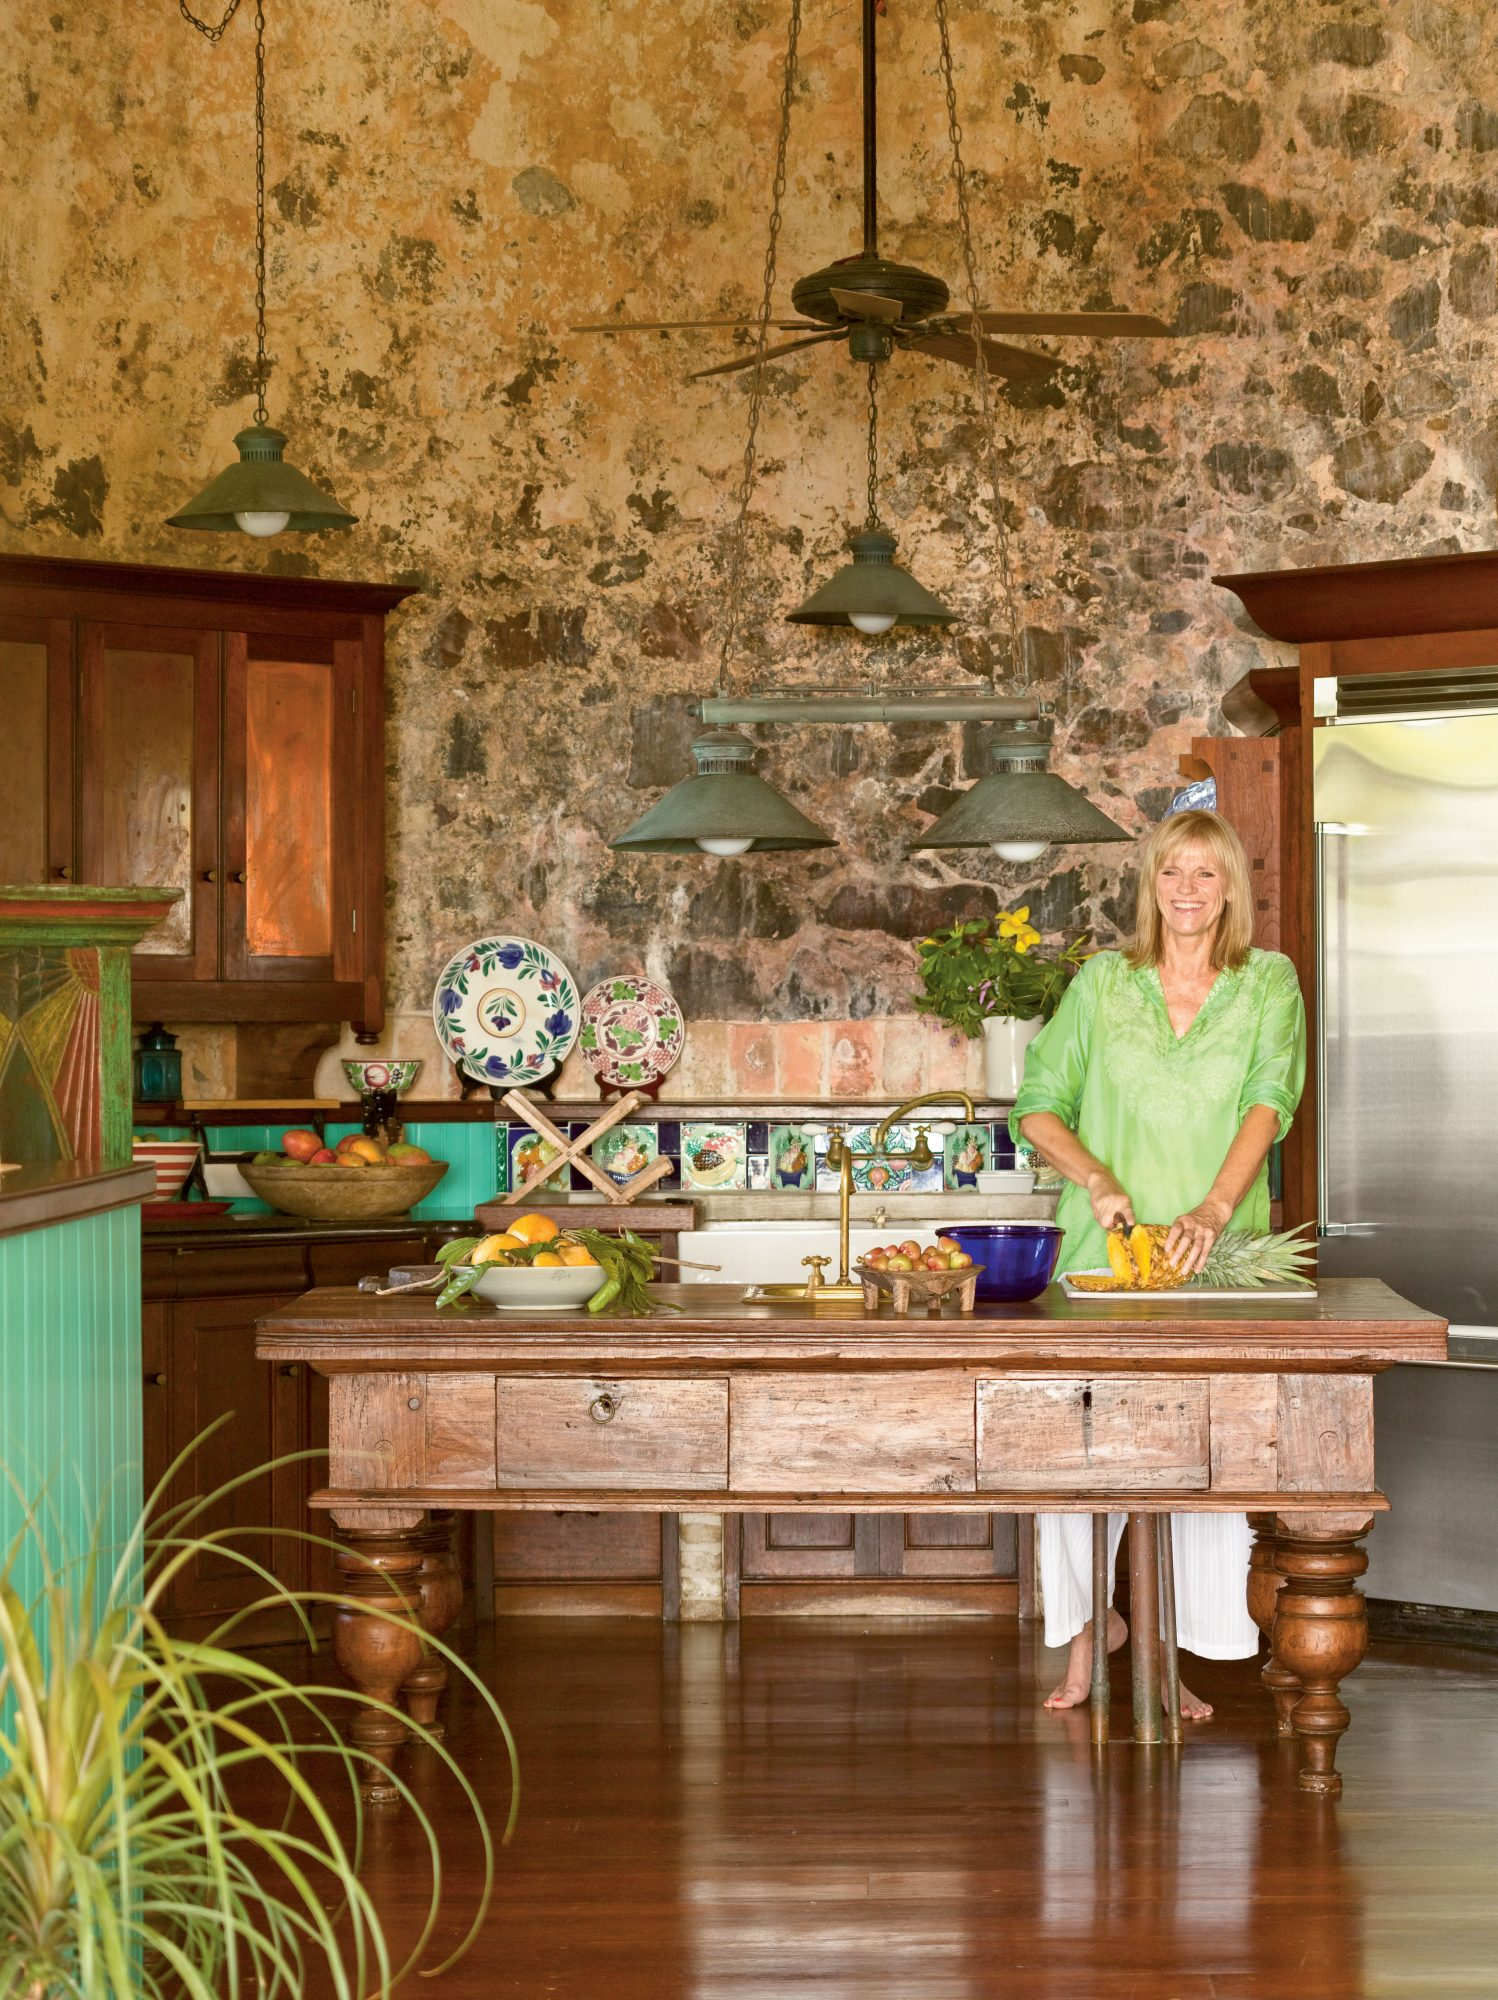 Our 25 Prettiest Island Rooms: Rustic Kitchen